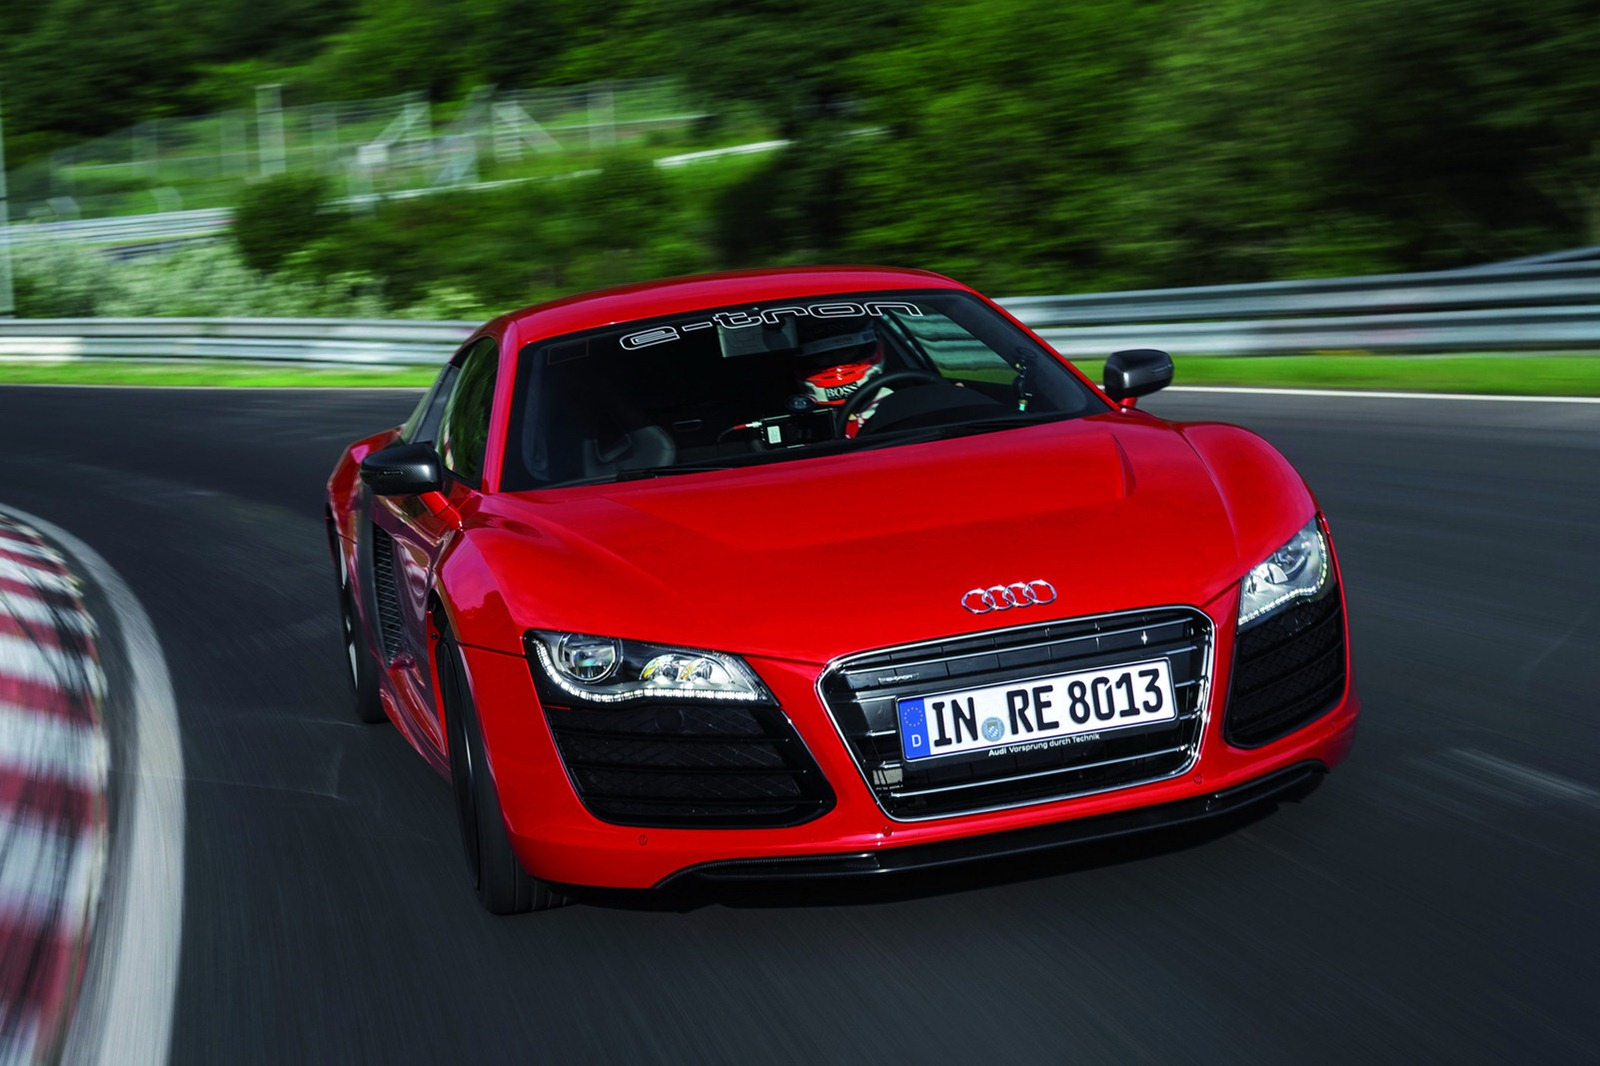 audi r8 e tron nurburgring record 8 09 autoevolution. Black Bedroom Furniture Sets. Home Design Ideas